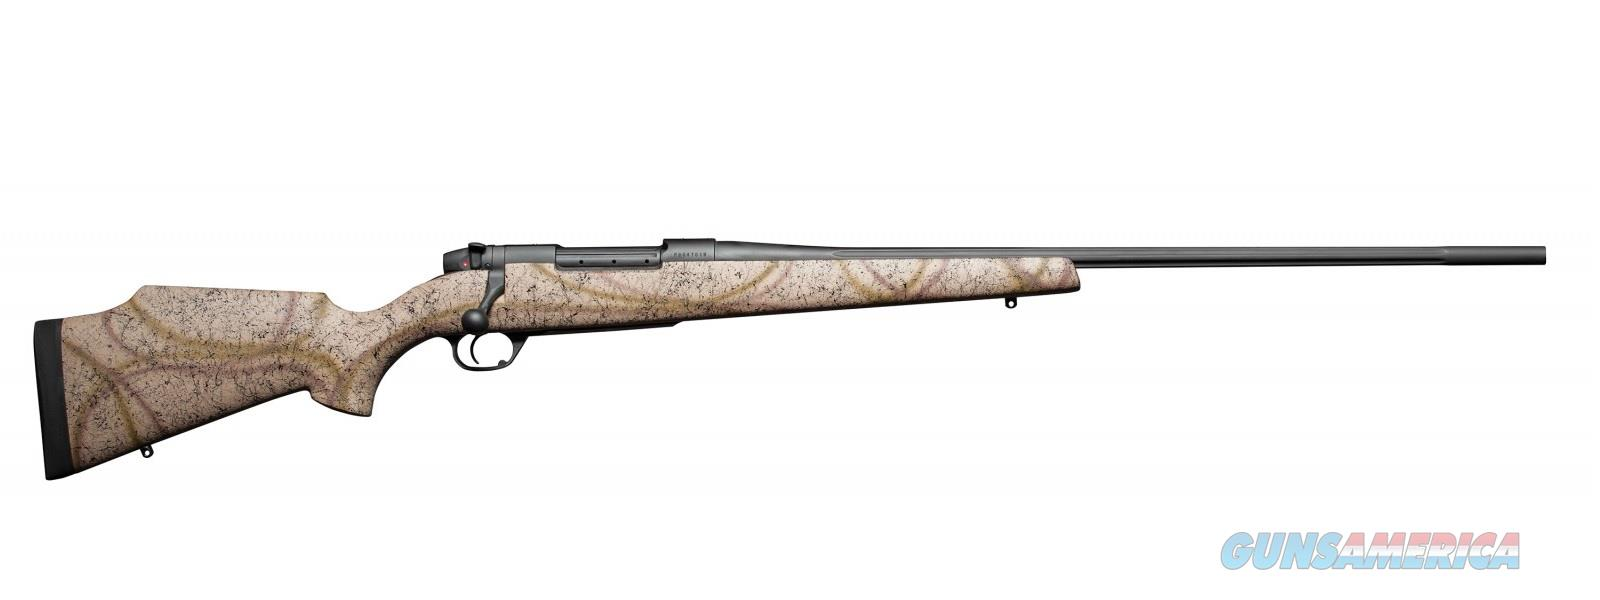 Weatherby Mark V Outfitter RC .270 Wby Mag MOFM270WR6O   Guns > Rifles > Weatherby Rifles > Sporting